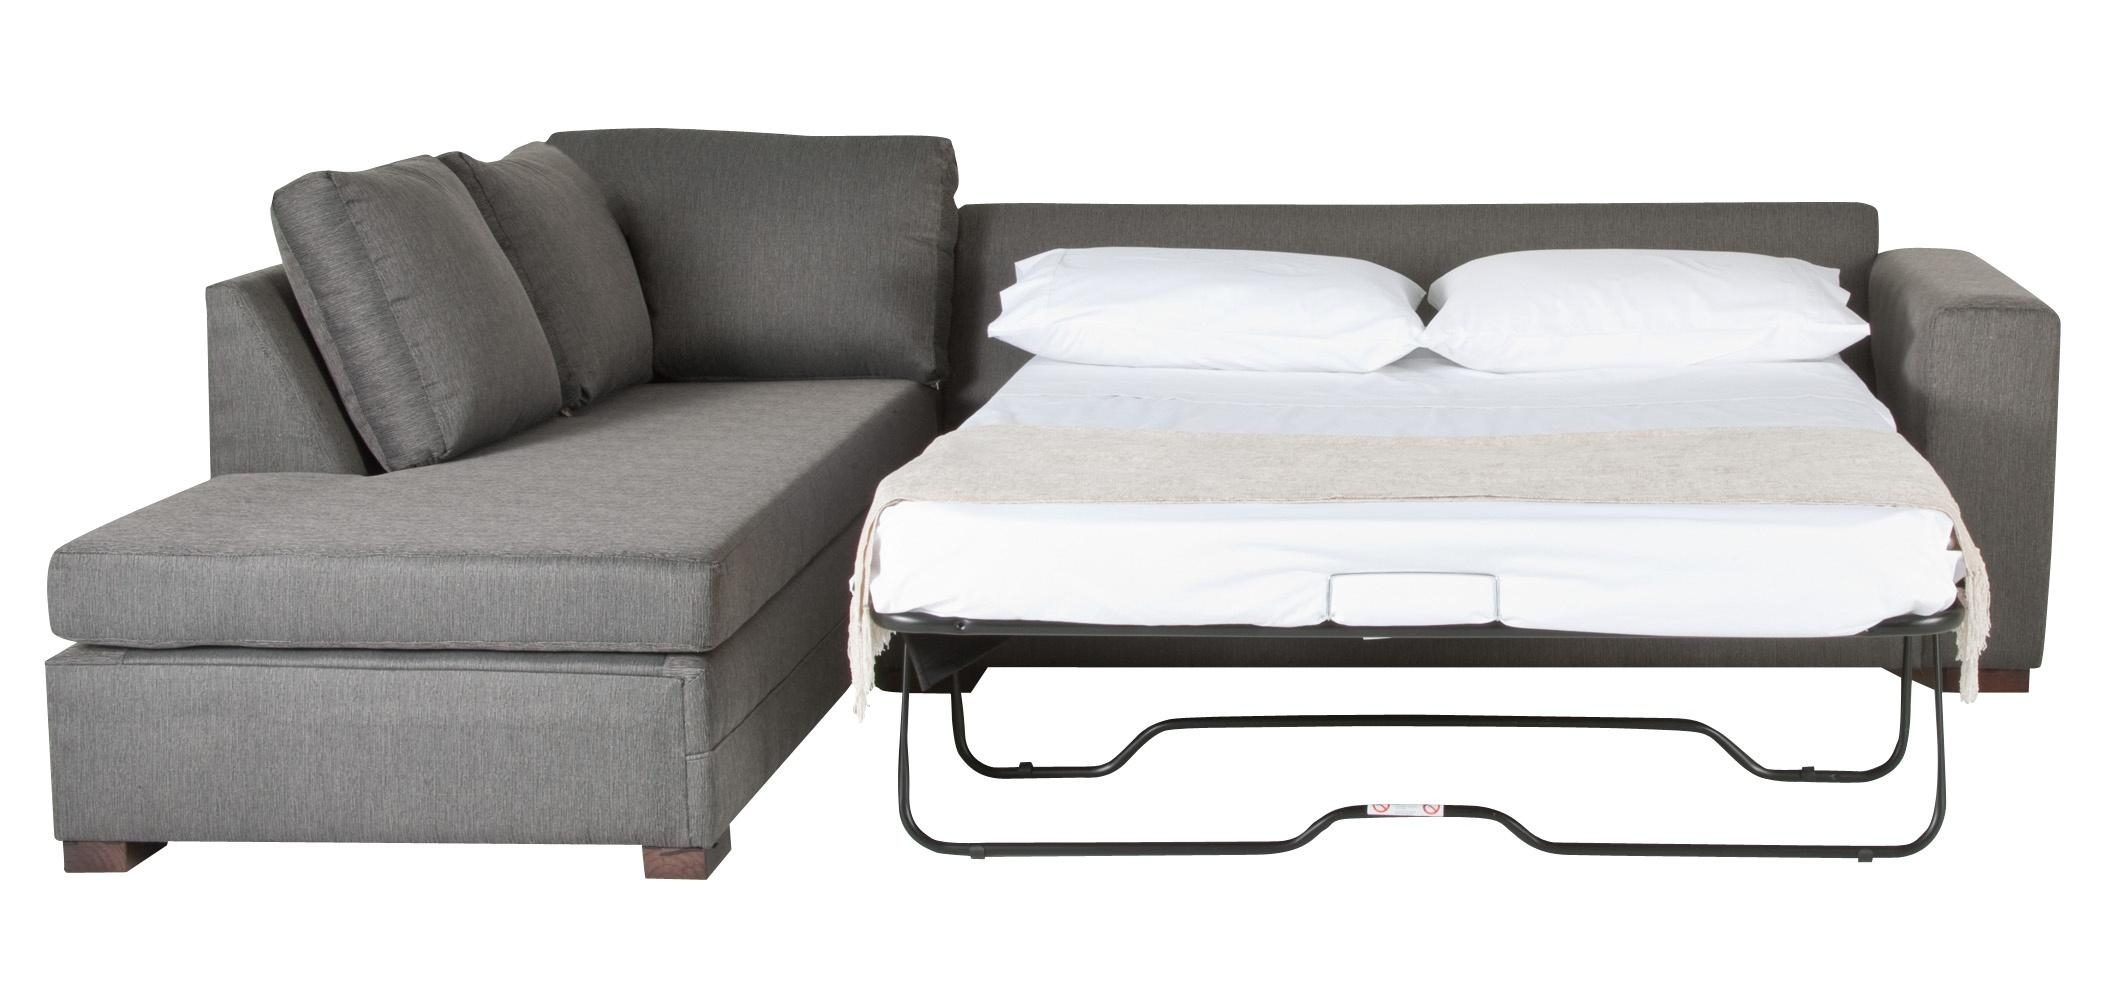 Fold Out Sectional Sleeper Sofa – Hotelsbacau For Braxton Sectional Sofas (View 9 of 20)